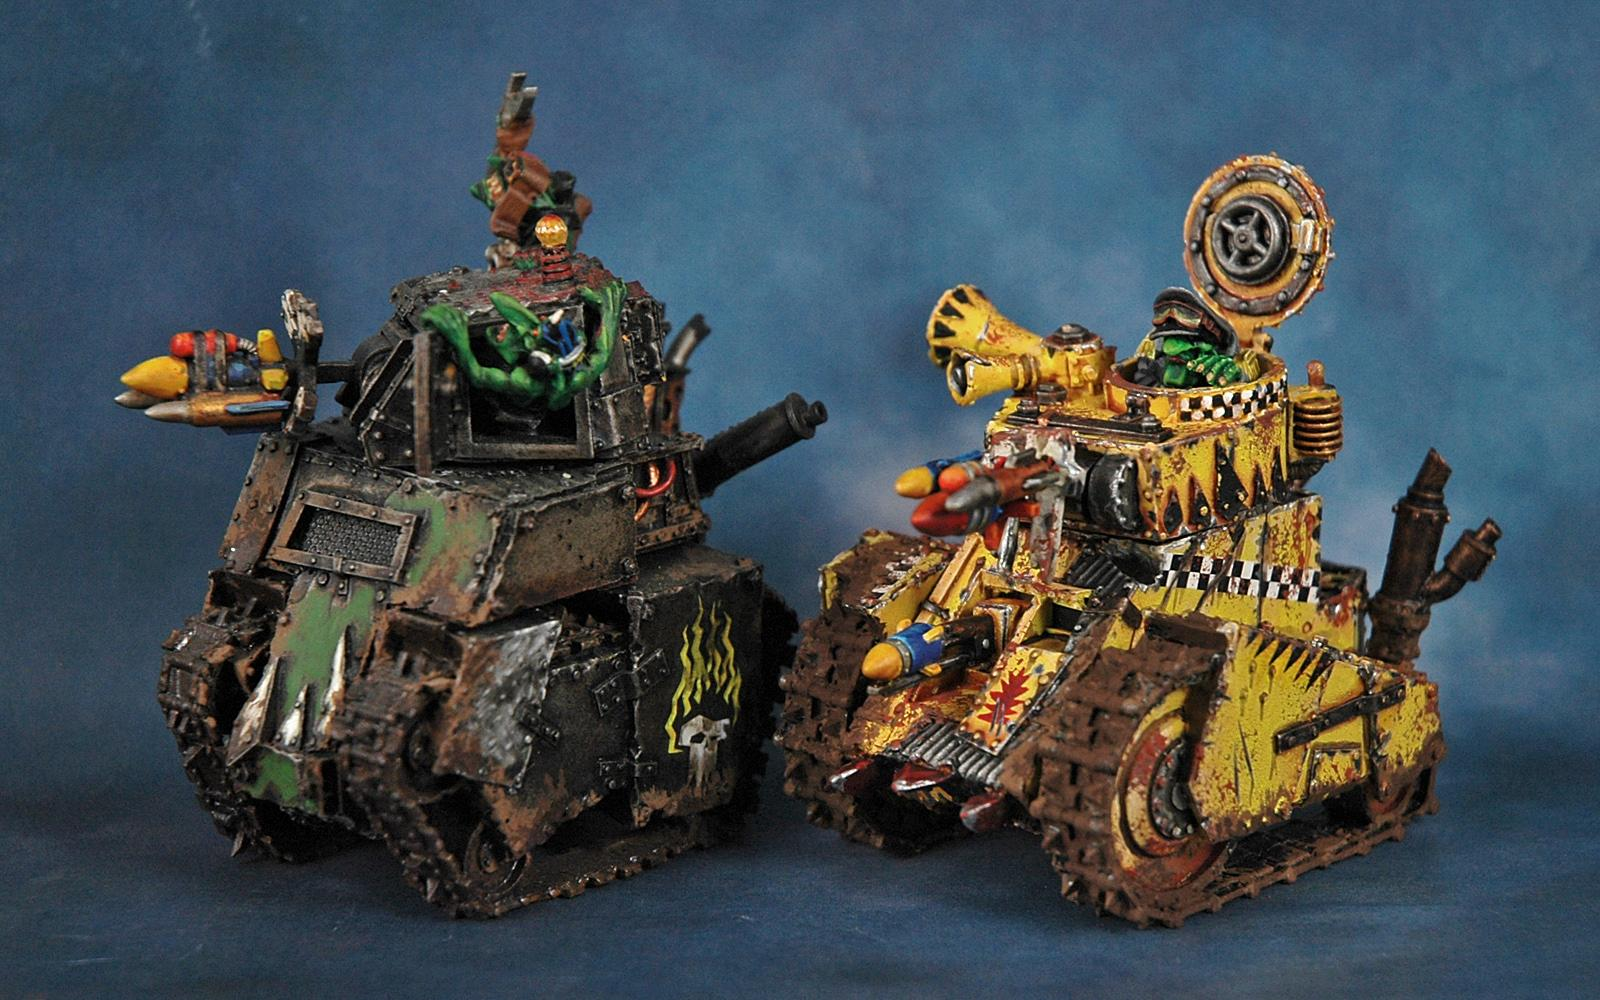 Bad Moons, Forge World, Grot Tanks, Orks, Warhammer 40,000